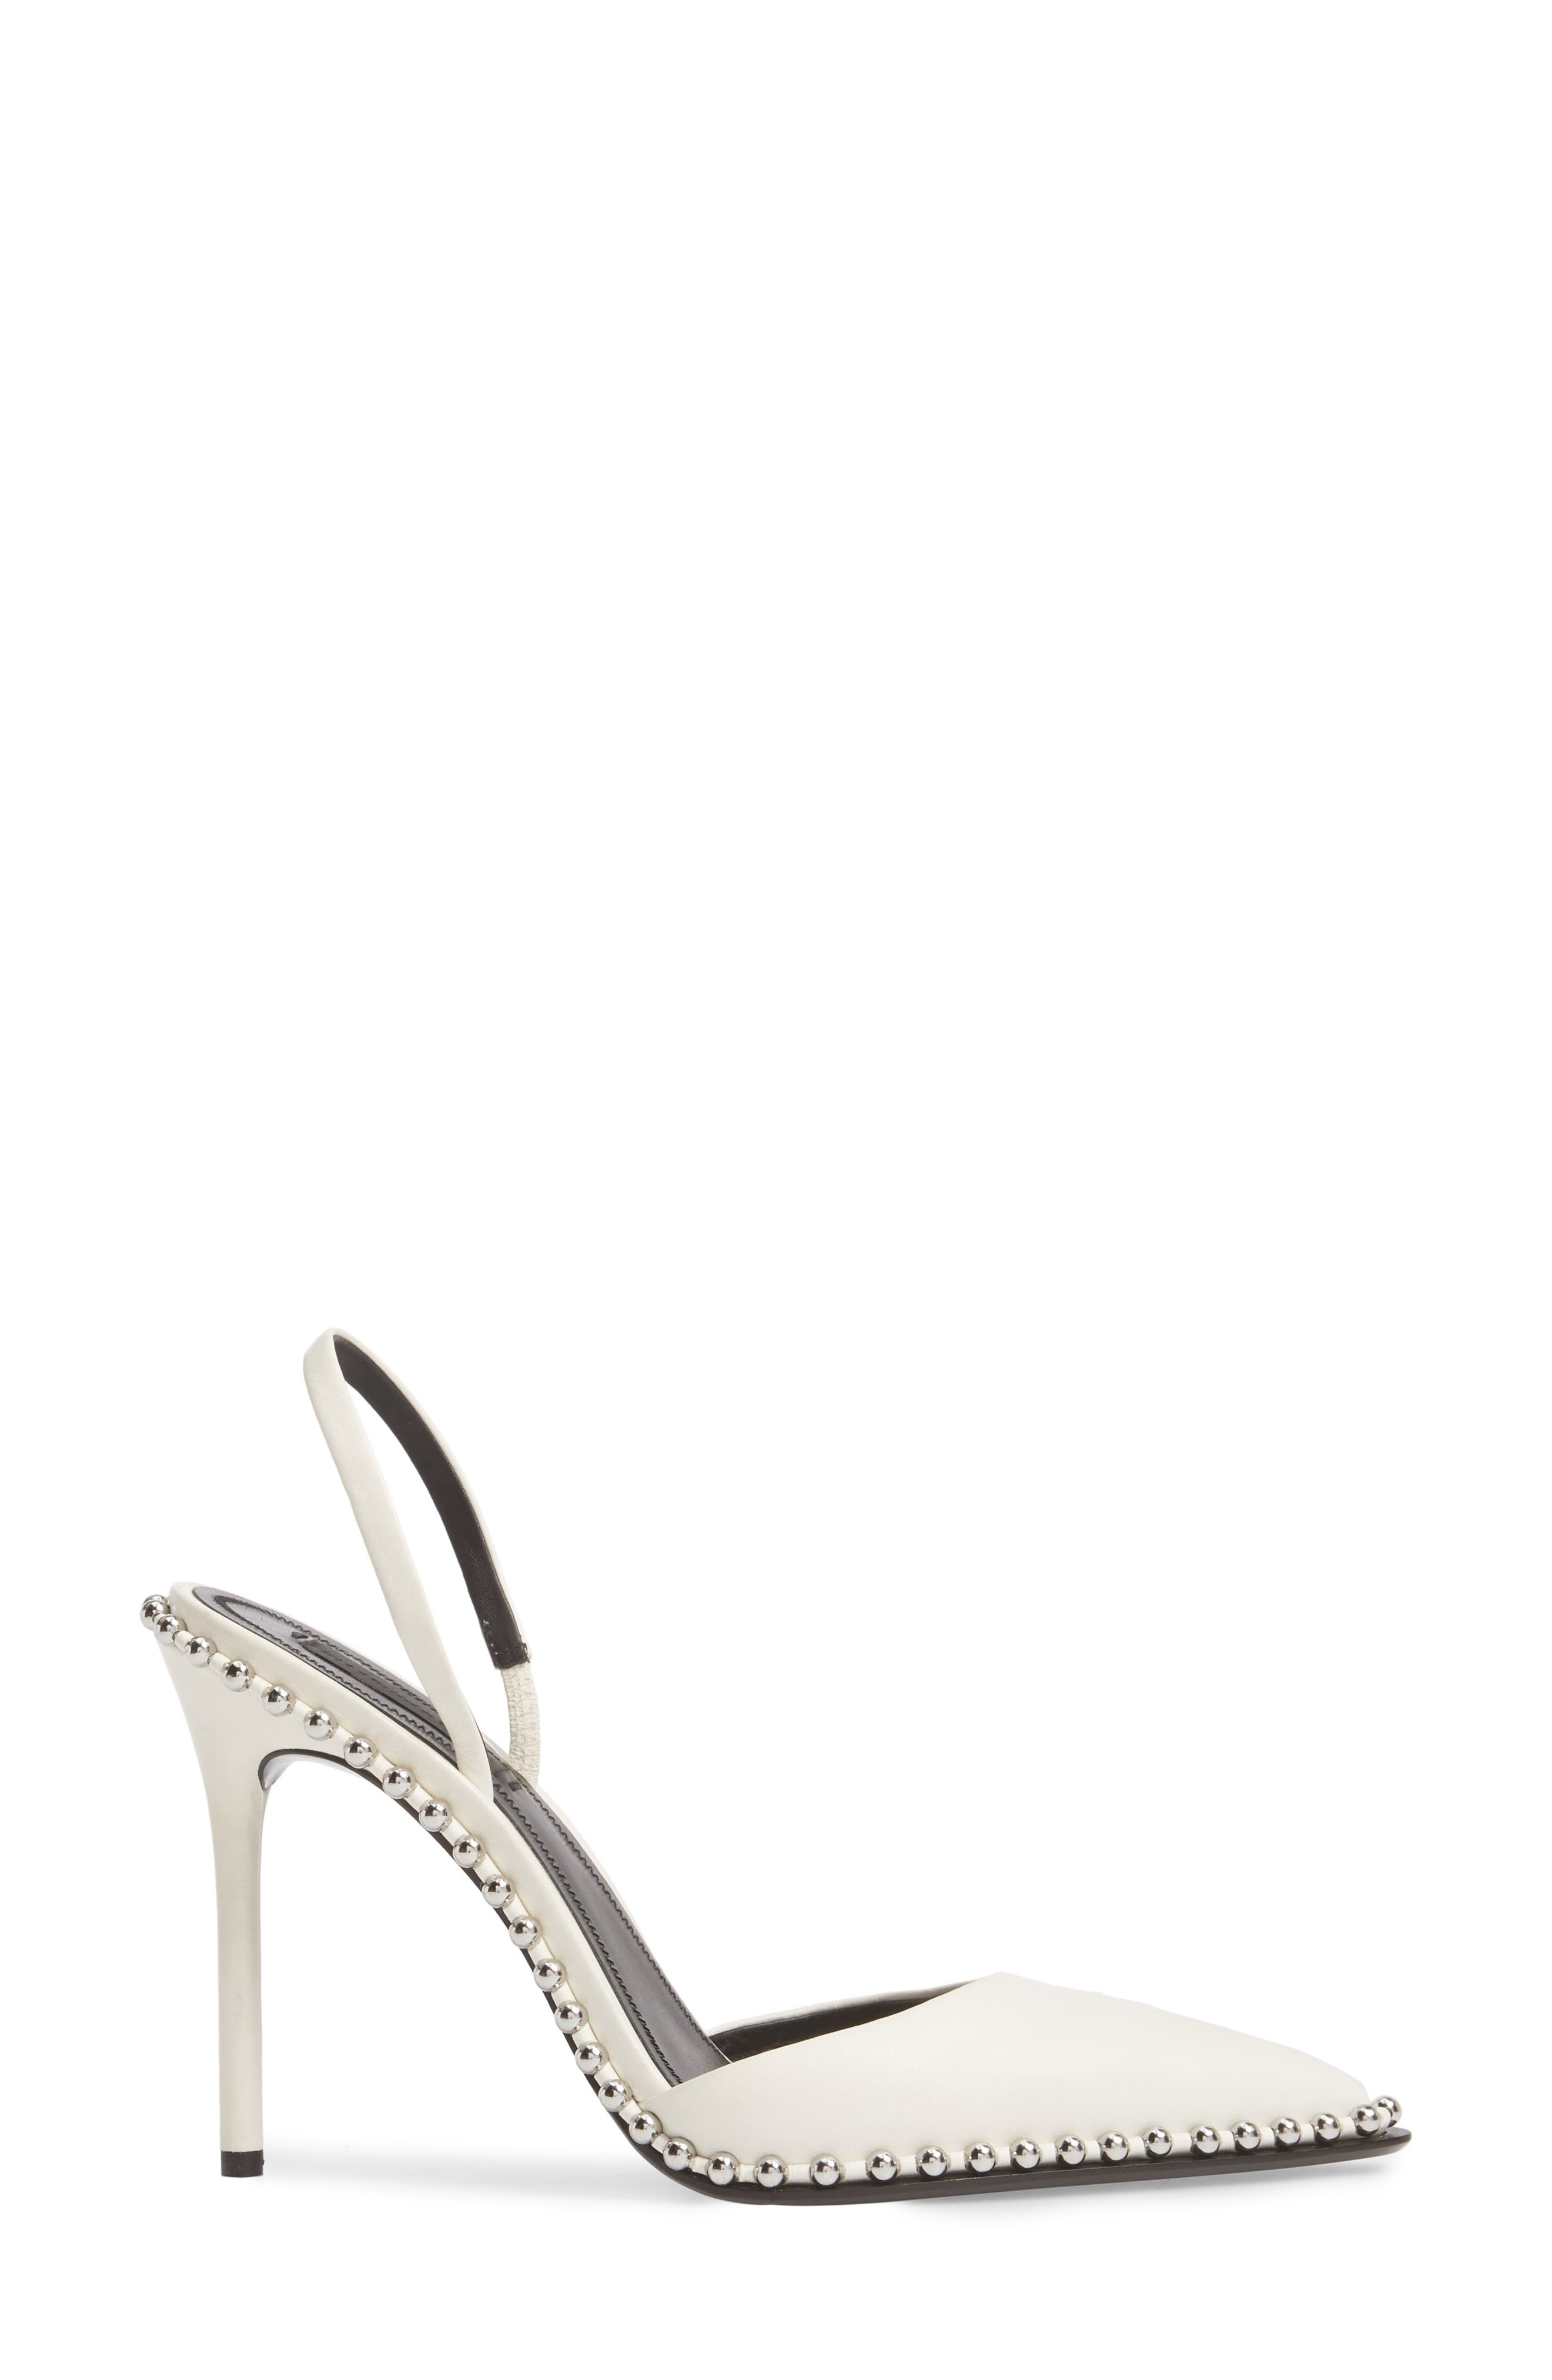 ALEXANDER WANG, Rina Beaded Pump, Alternate thumbnail 3, color, WHITE LEATHER